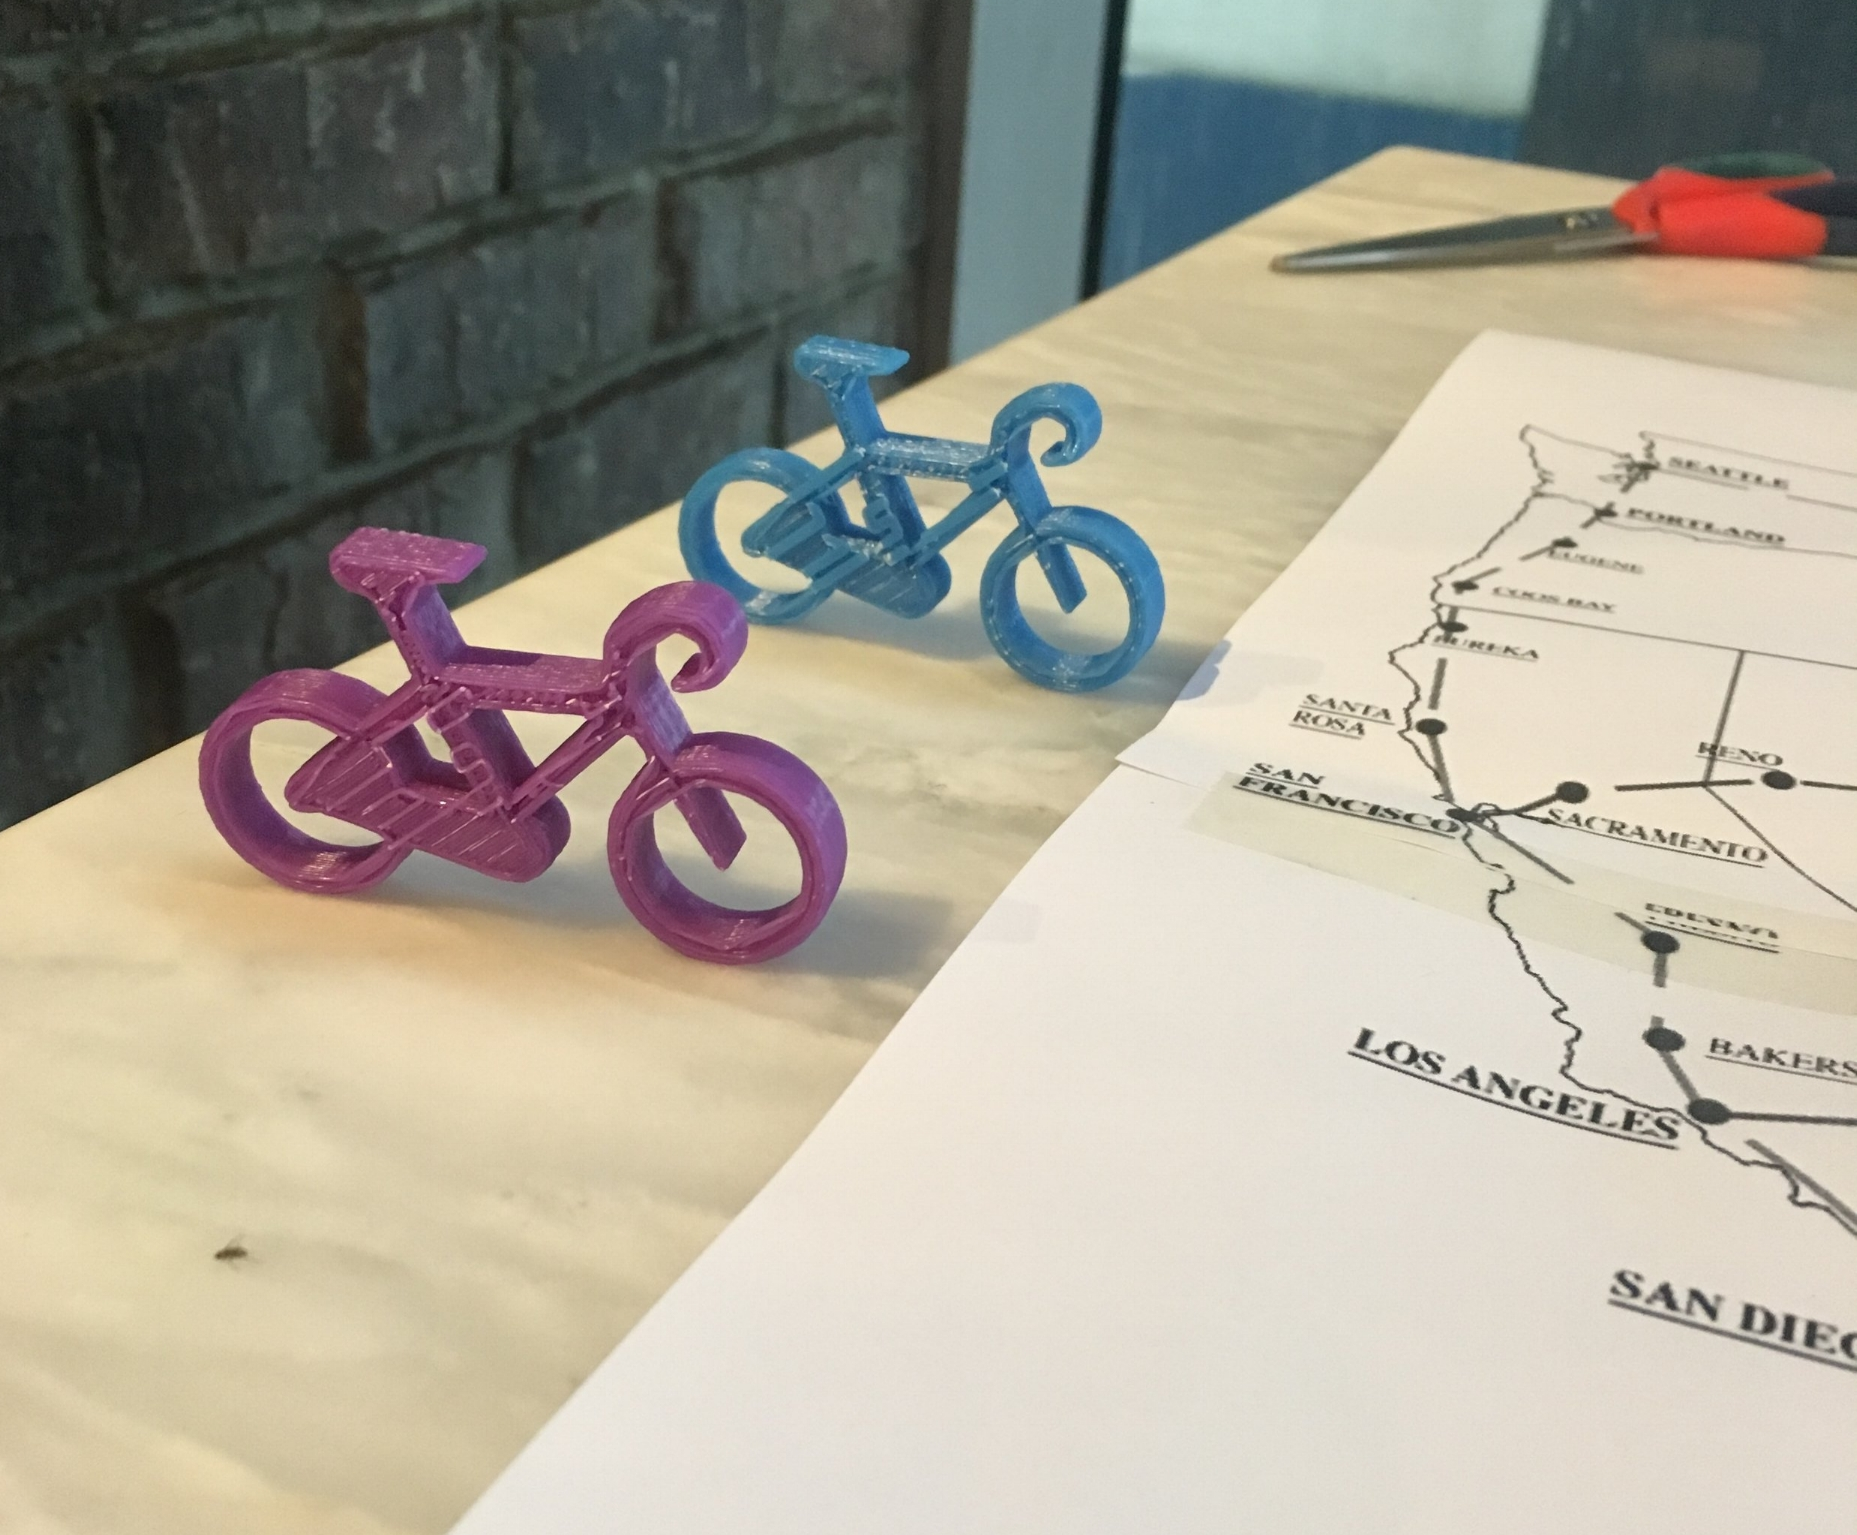 The first playing pieces! Got a 3D file of a bicycle from GradCad.com and used our school's 3D printing machine to print them out (we are both teachers).